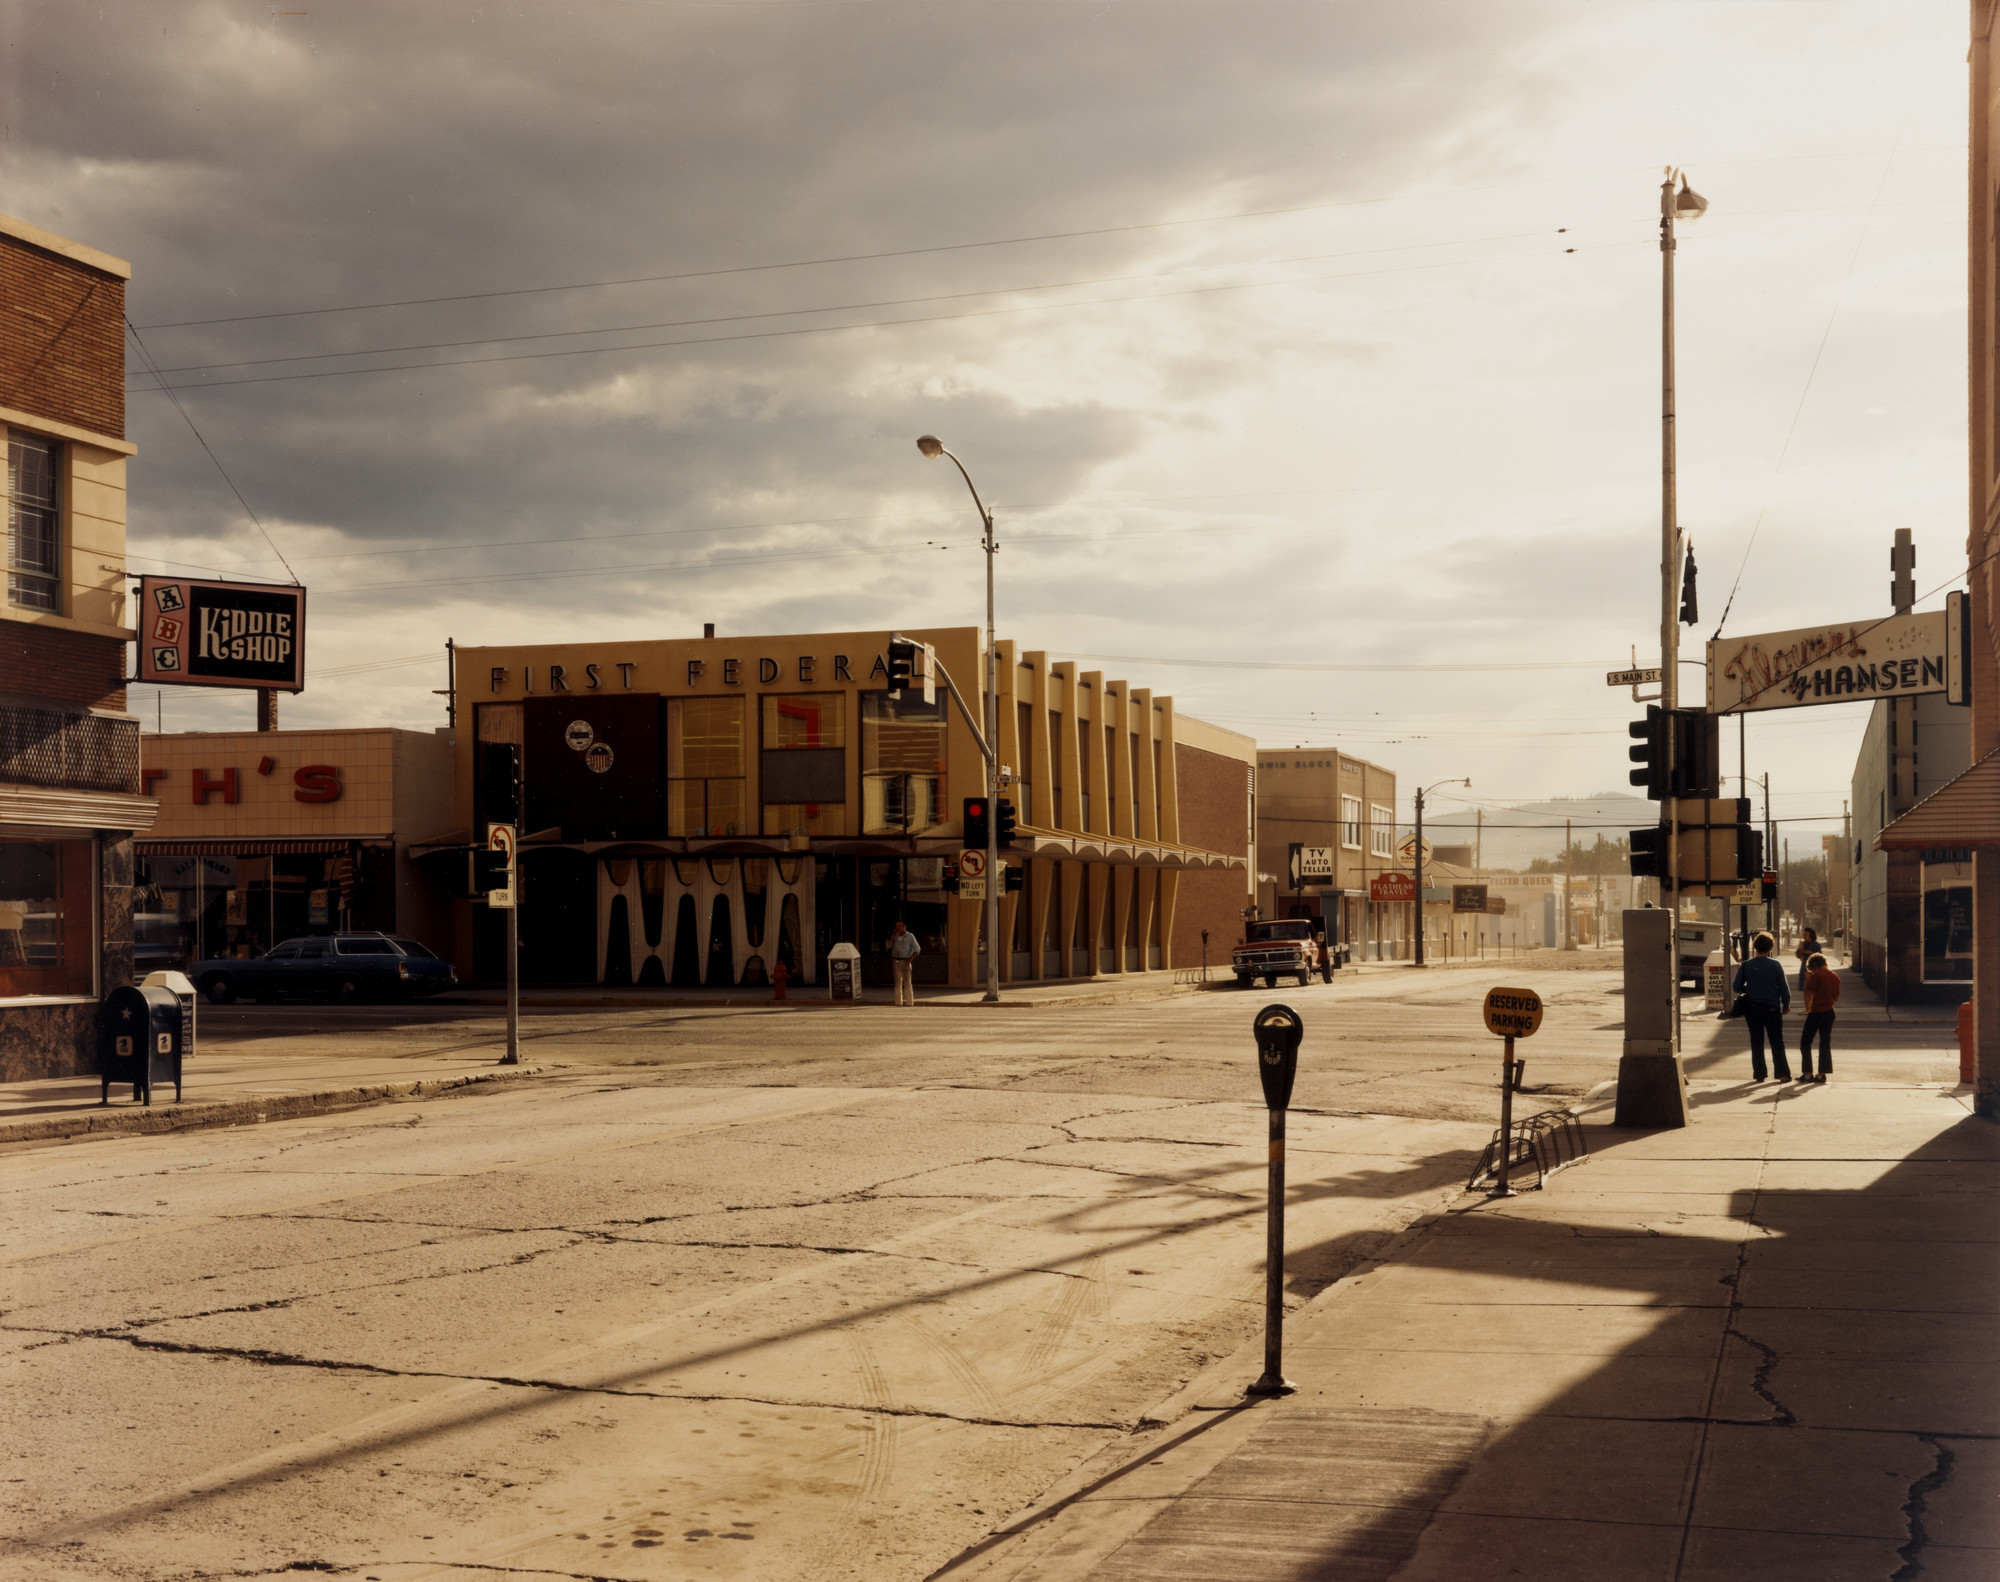 Stephen Shore  2nd Street East and South Main Street, Kalispell